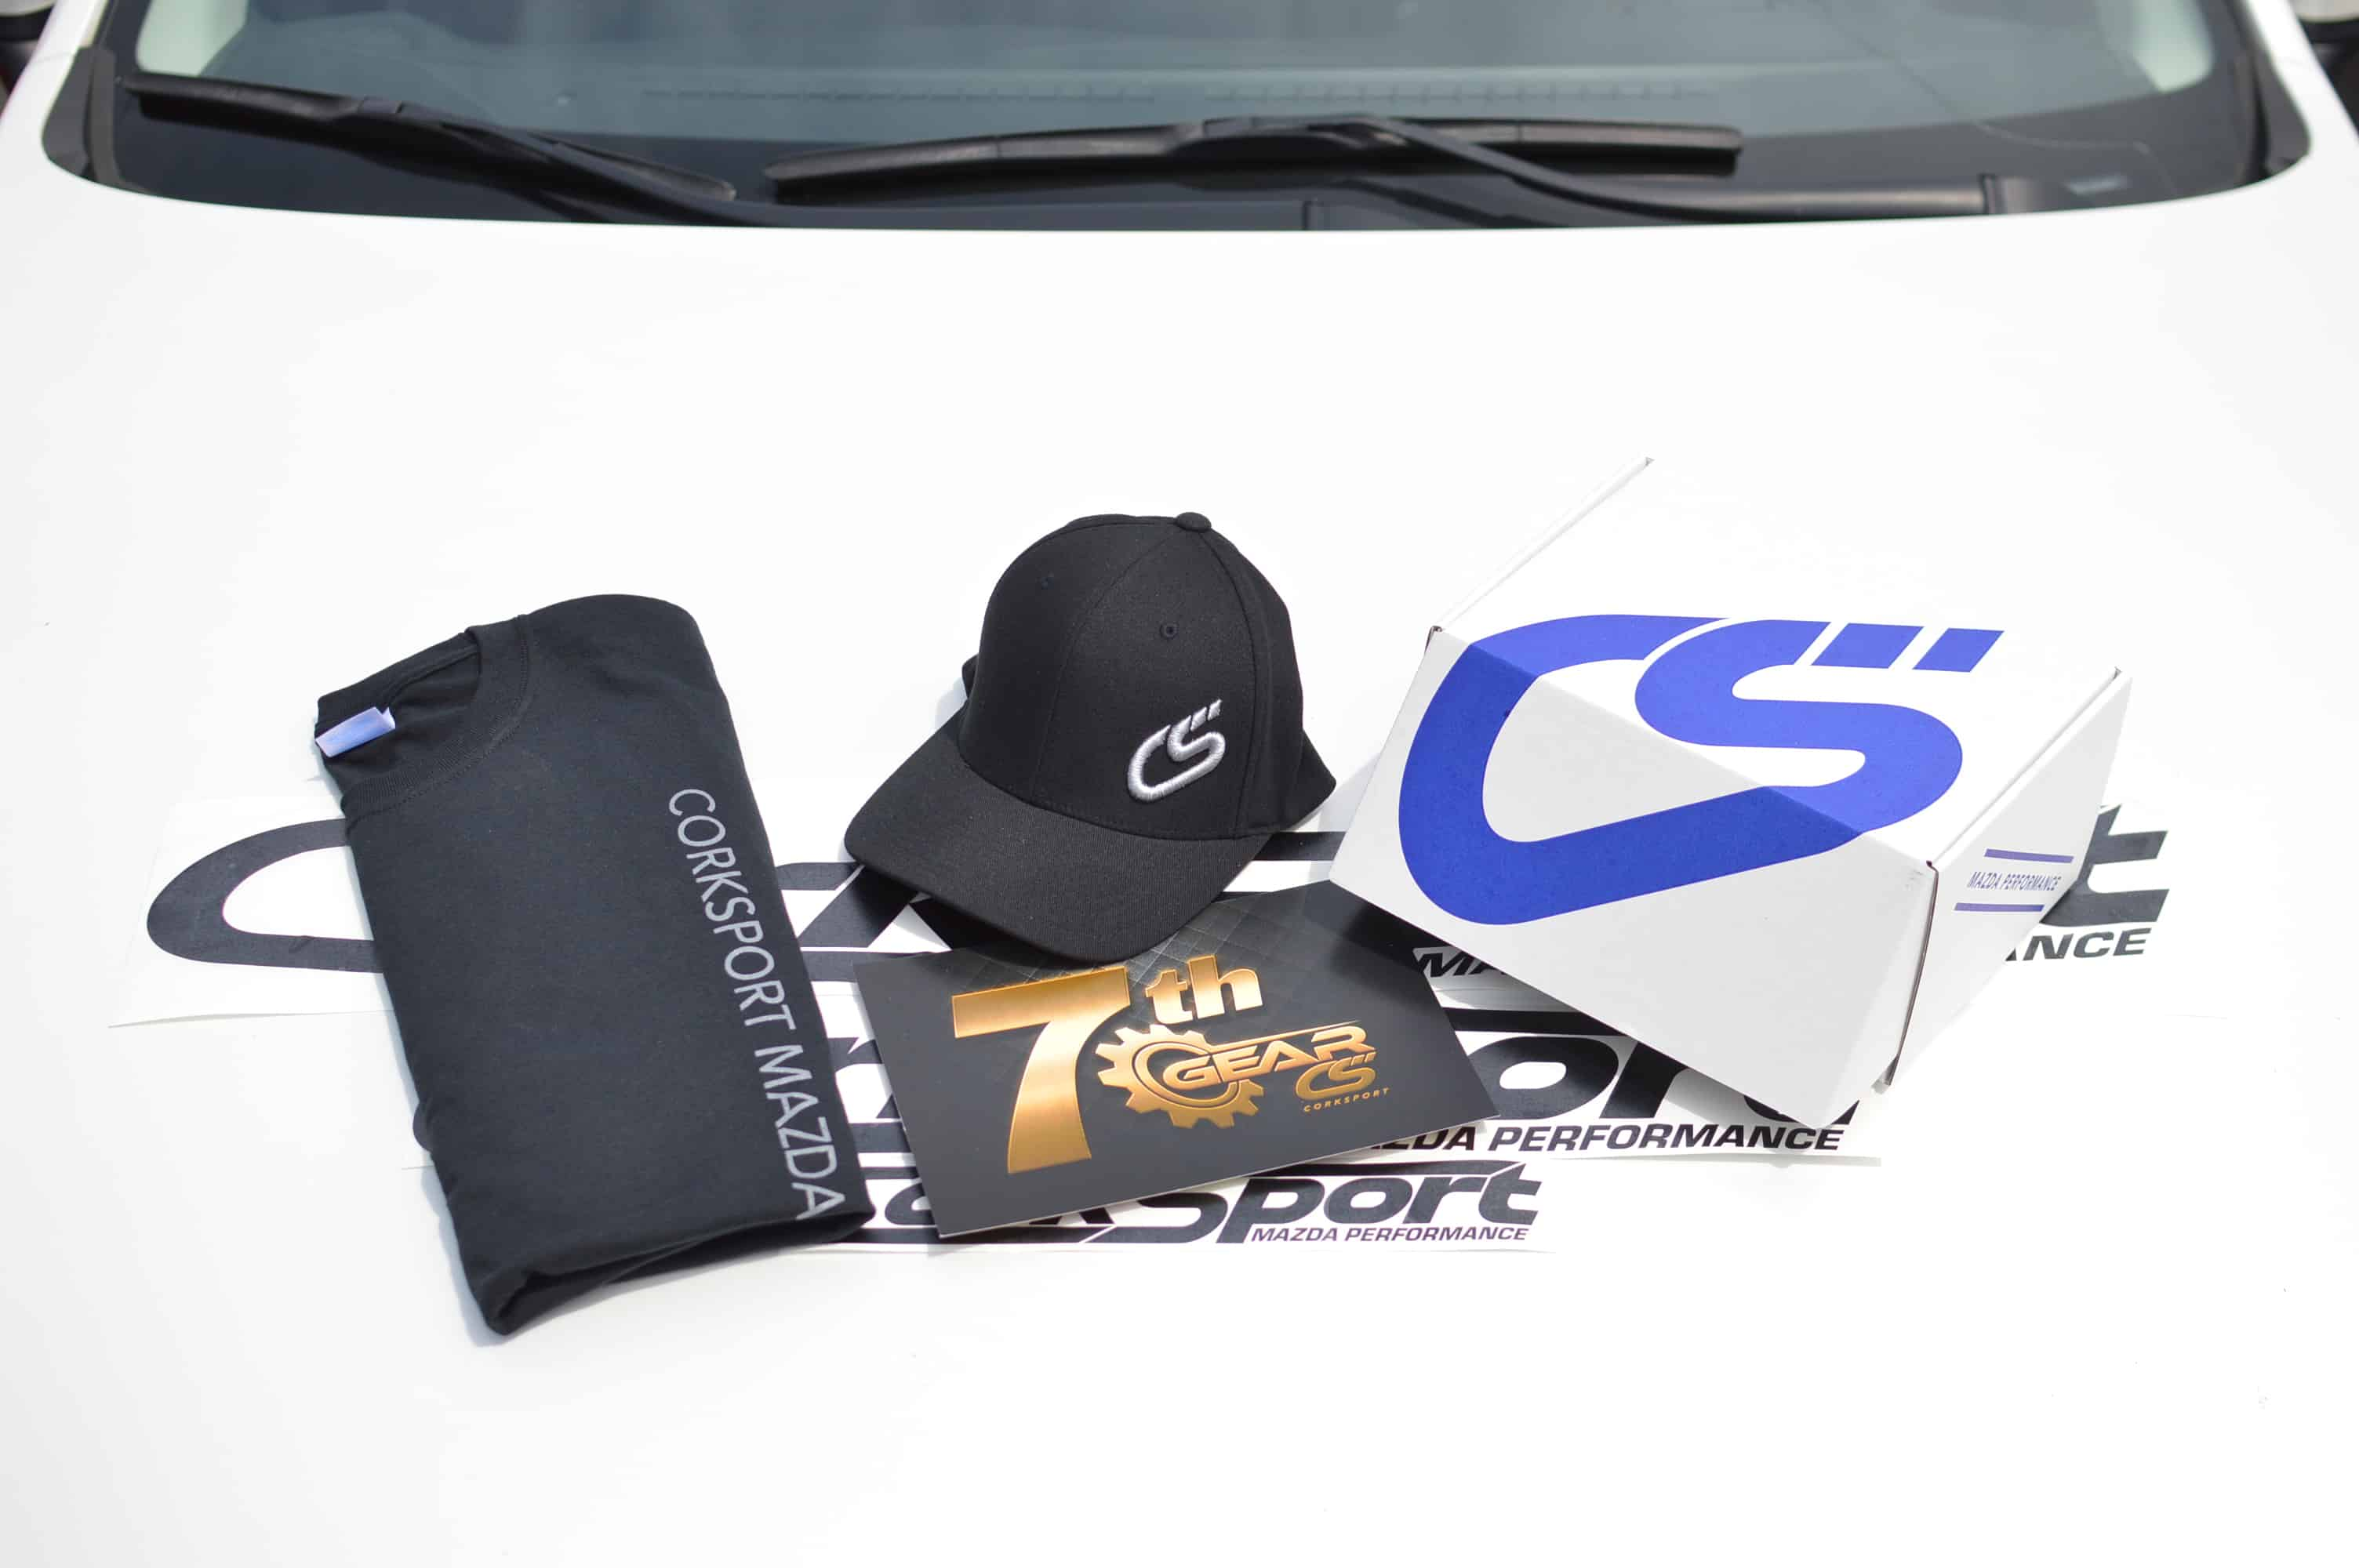 CorkSport's exclusive new membership program, 7th Gear, is all about building a family of dedicated Mazda enthusiasts.